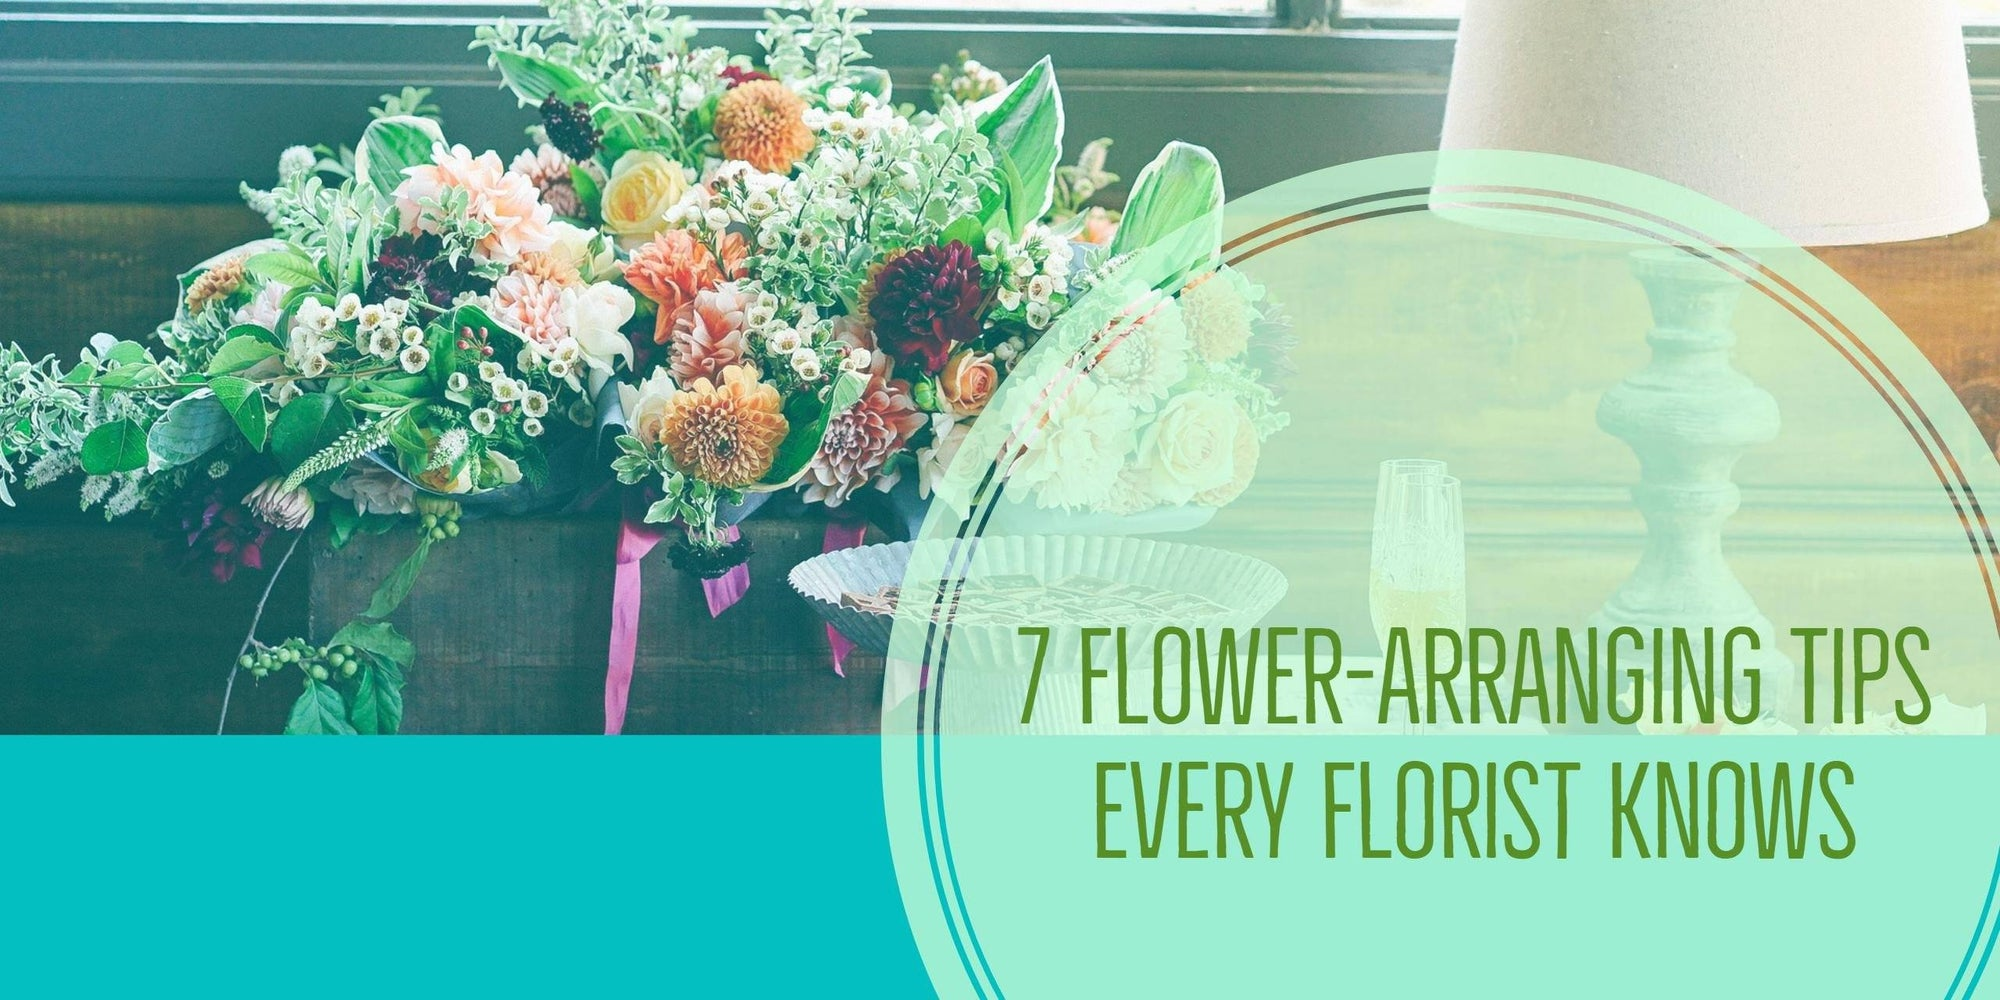 7 Flower-Arranging Tips Your Florist Doesn't Want You to Know